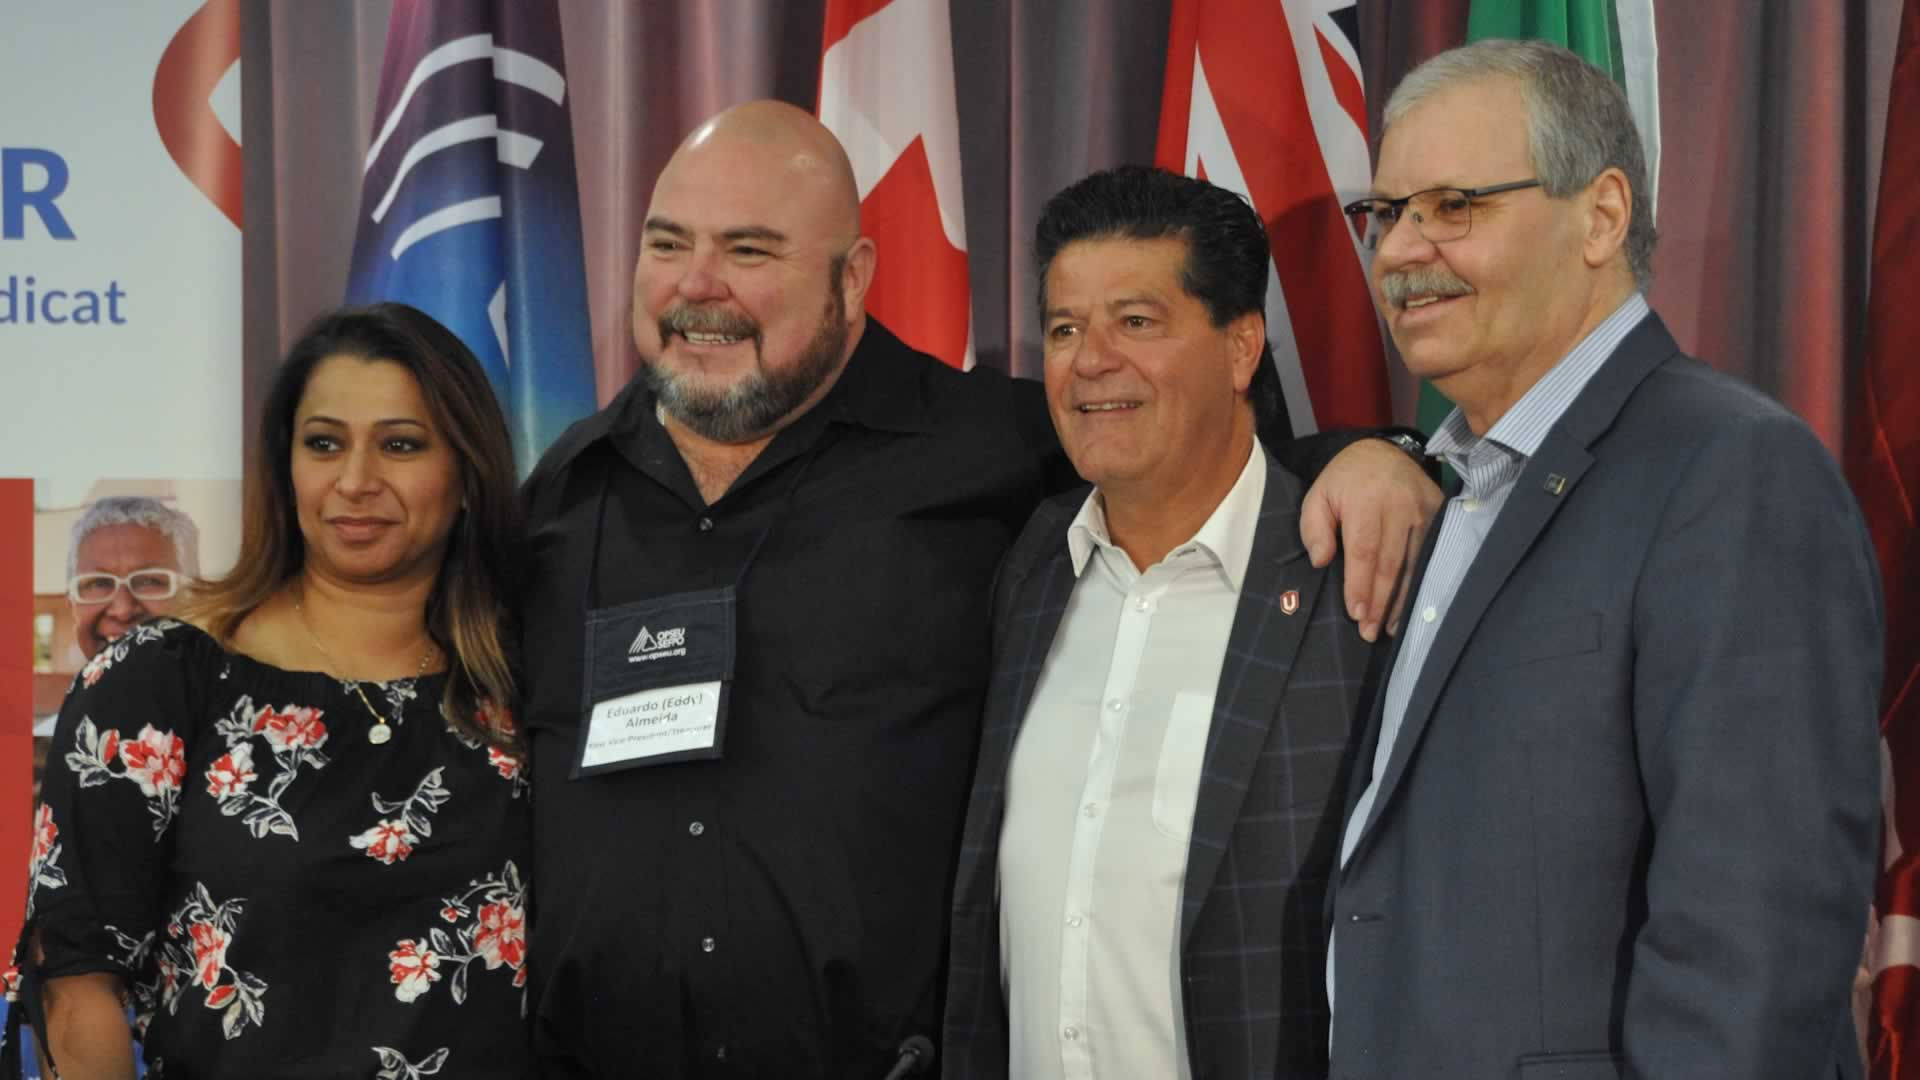 From left to right: Naureen Rizvi, Unifor Ontario Regional Director, Eduardo (Eddy) Almeida, OPSEU First Vice-President/Treasurer, Jerry Dias, Unifor National President, Warren (Smokey) Thomas, OPSEU President.